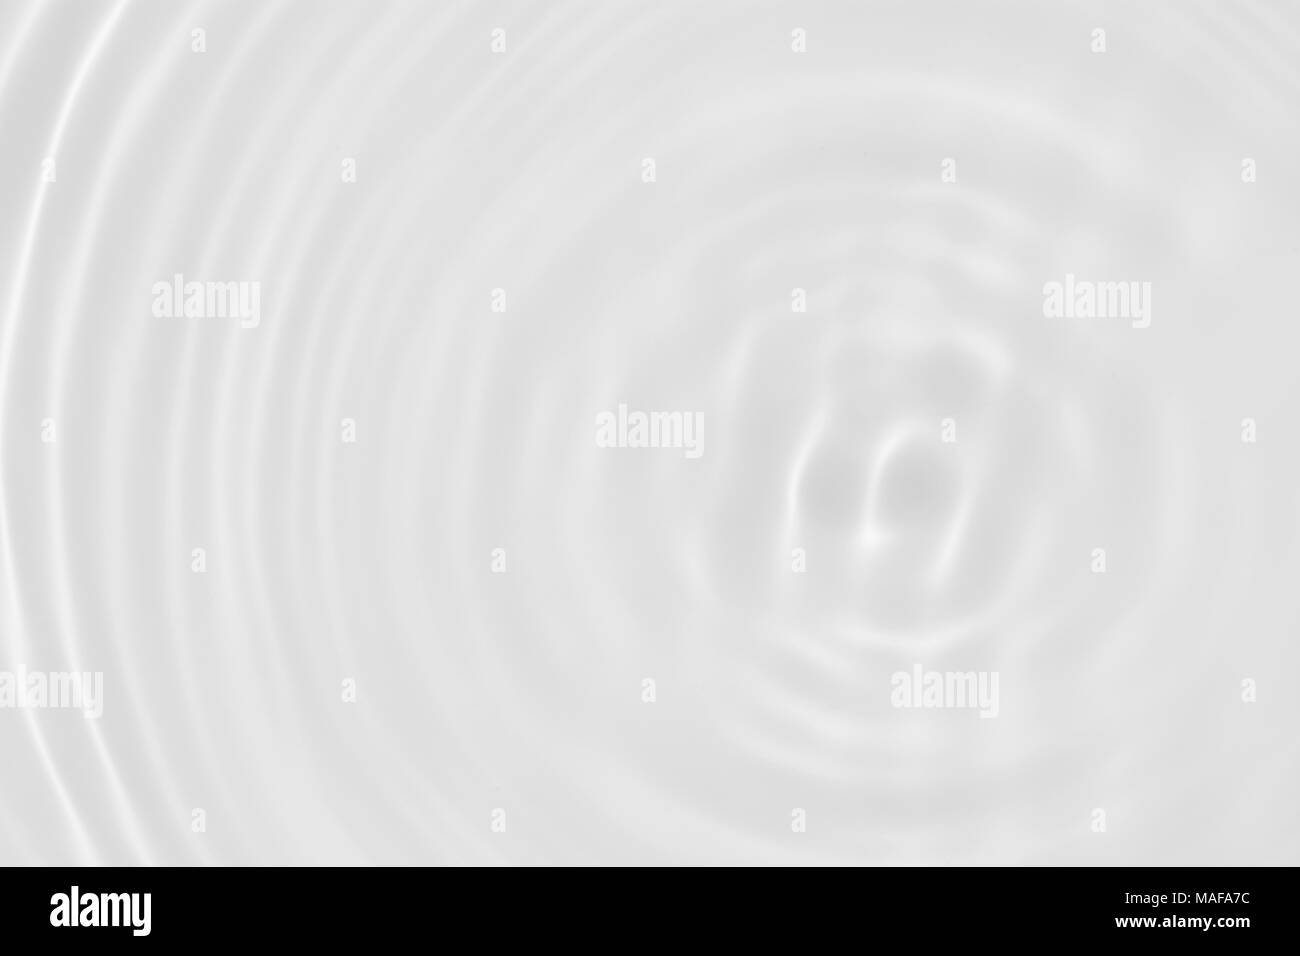 White wave abstract or water ripple texture - Stock Image